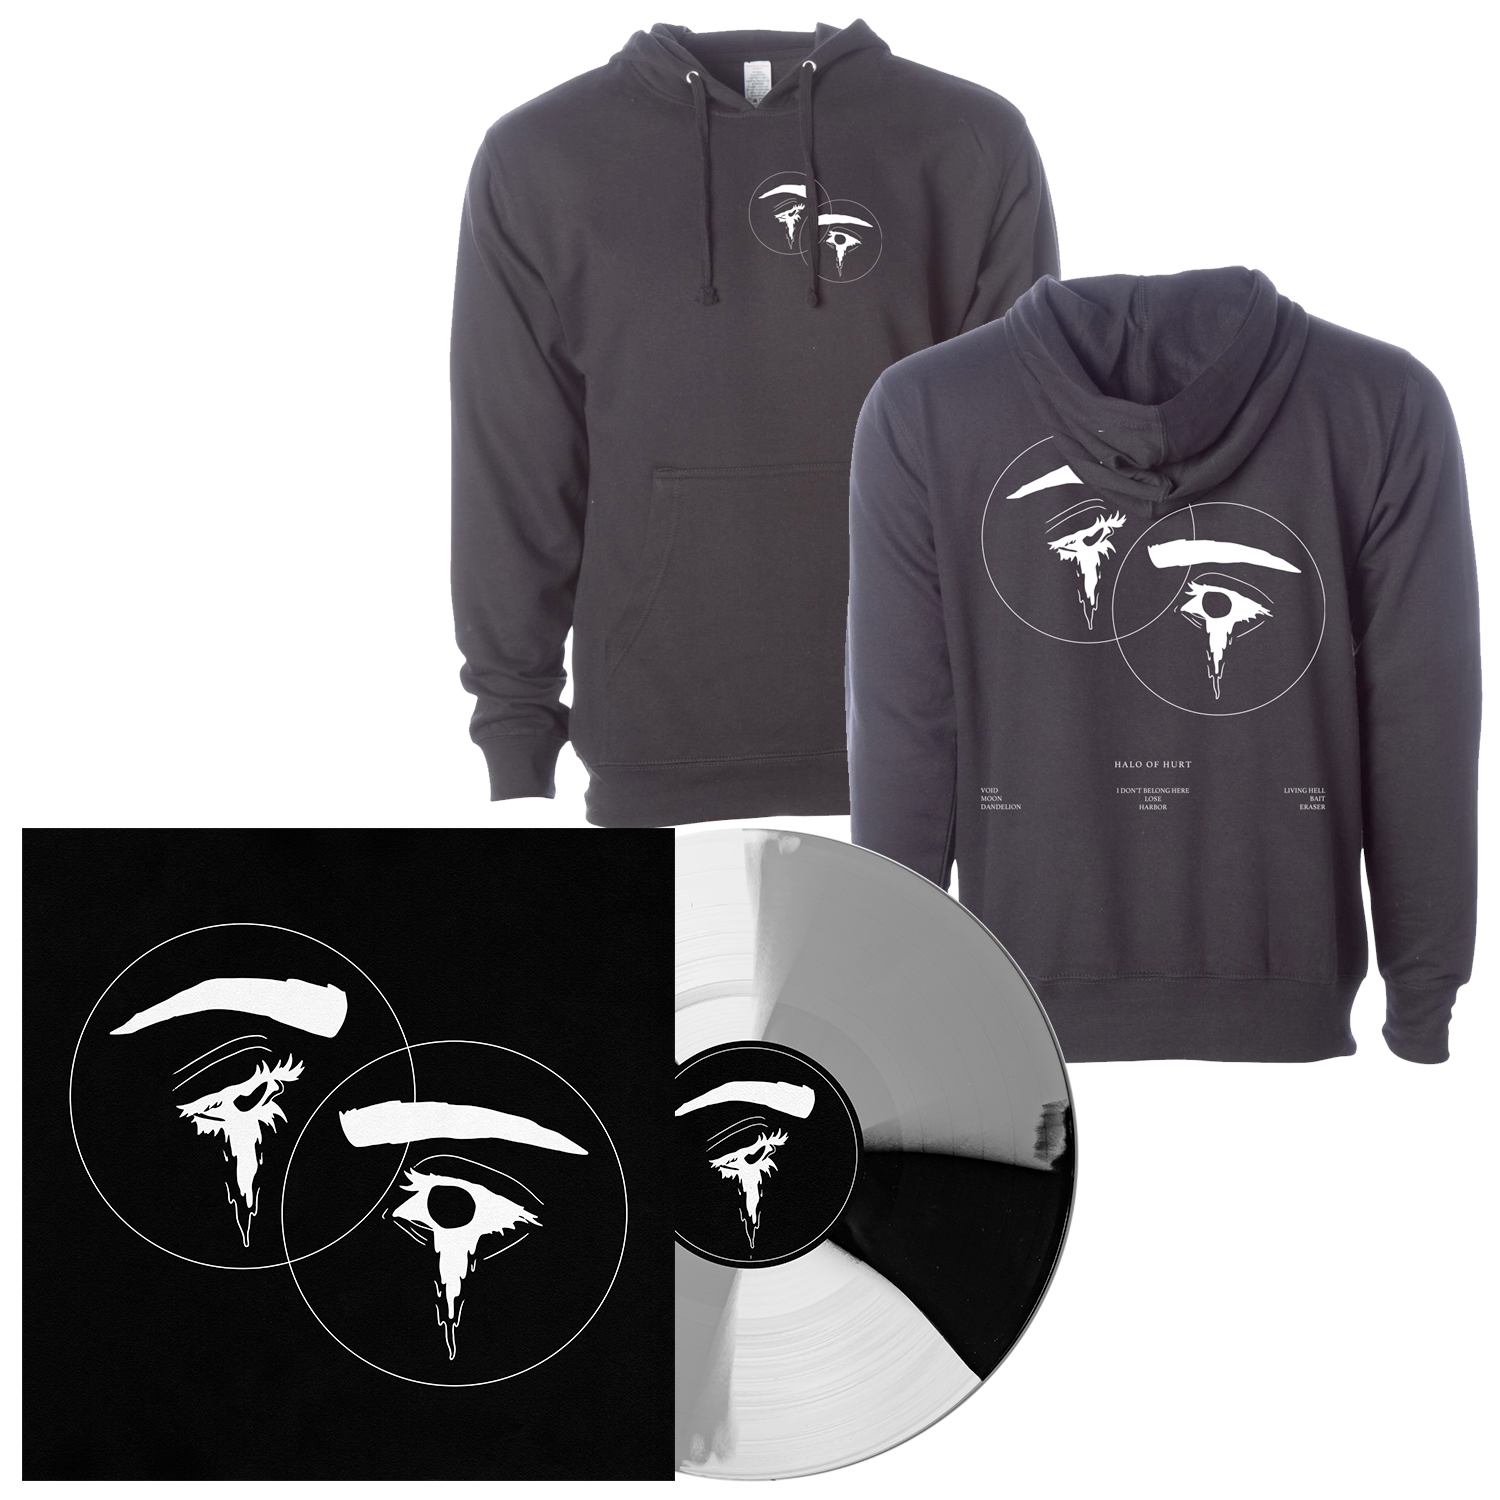 Seahaven 'Halo of Hurt' PN1 + Hoody Bundle